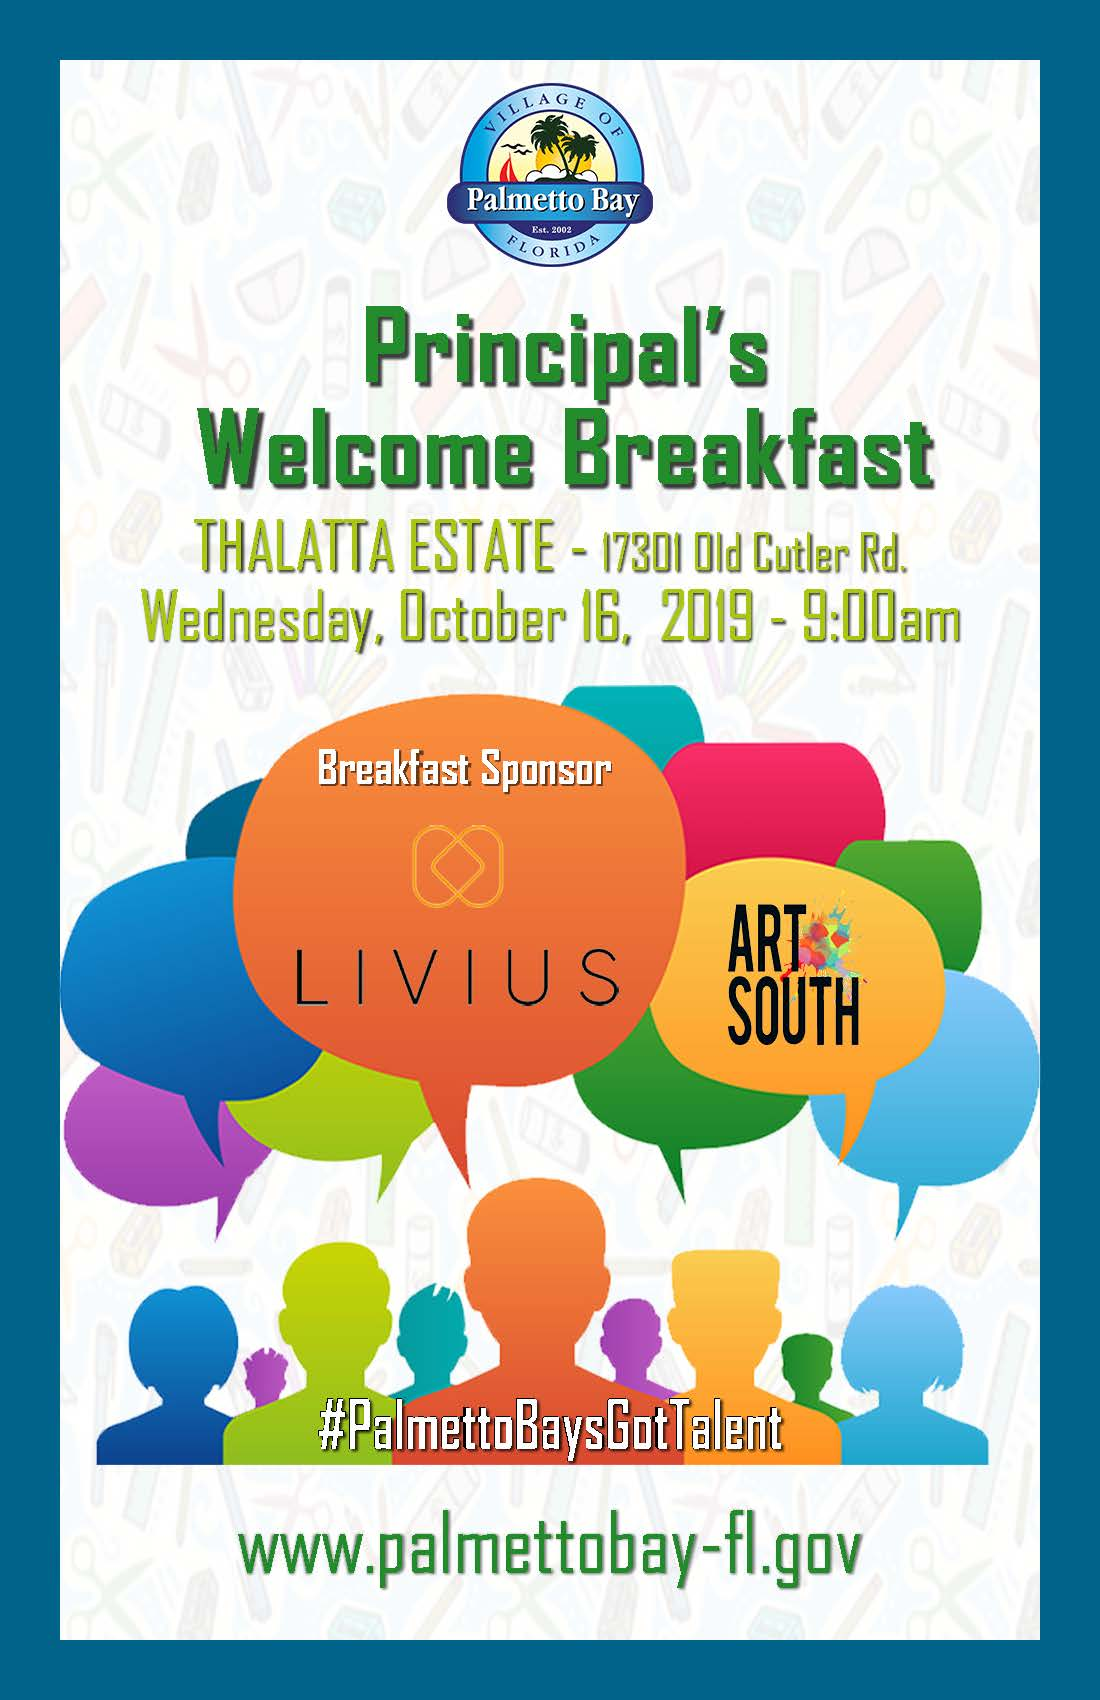 Principal's Welcome Breakfast at Thalatta Estate 17301 Old Cutler Road on Wednesday, October 16,